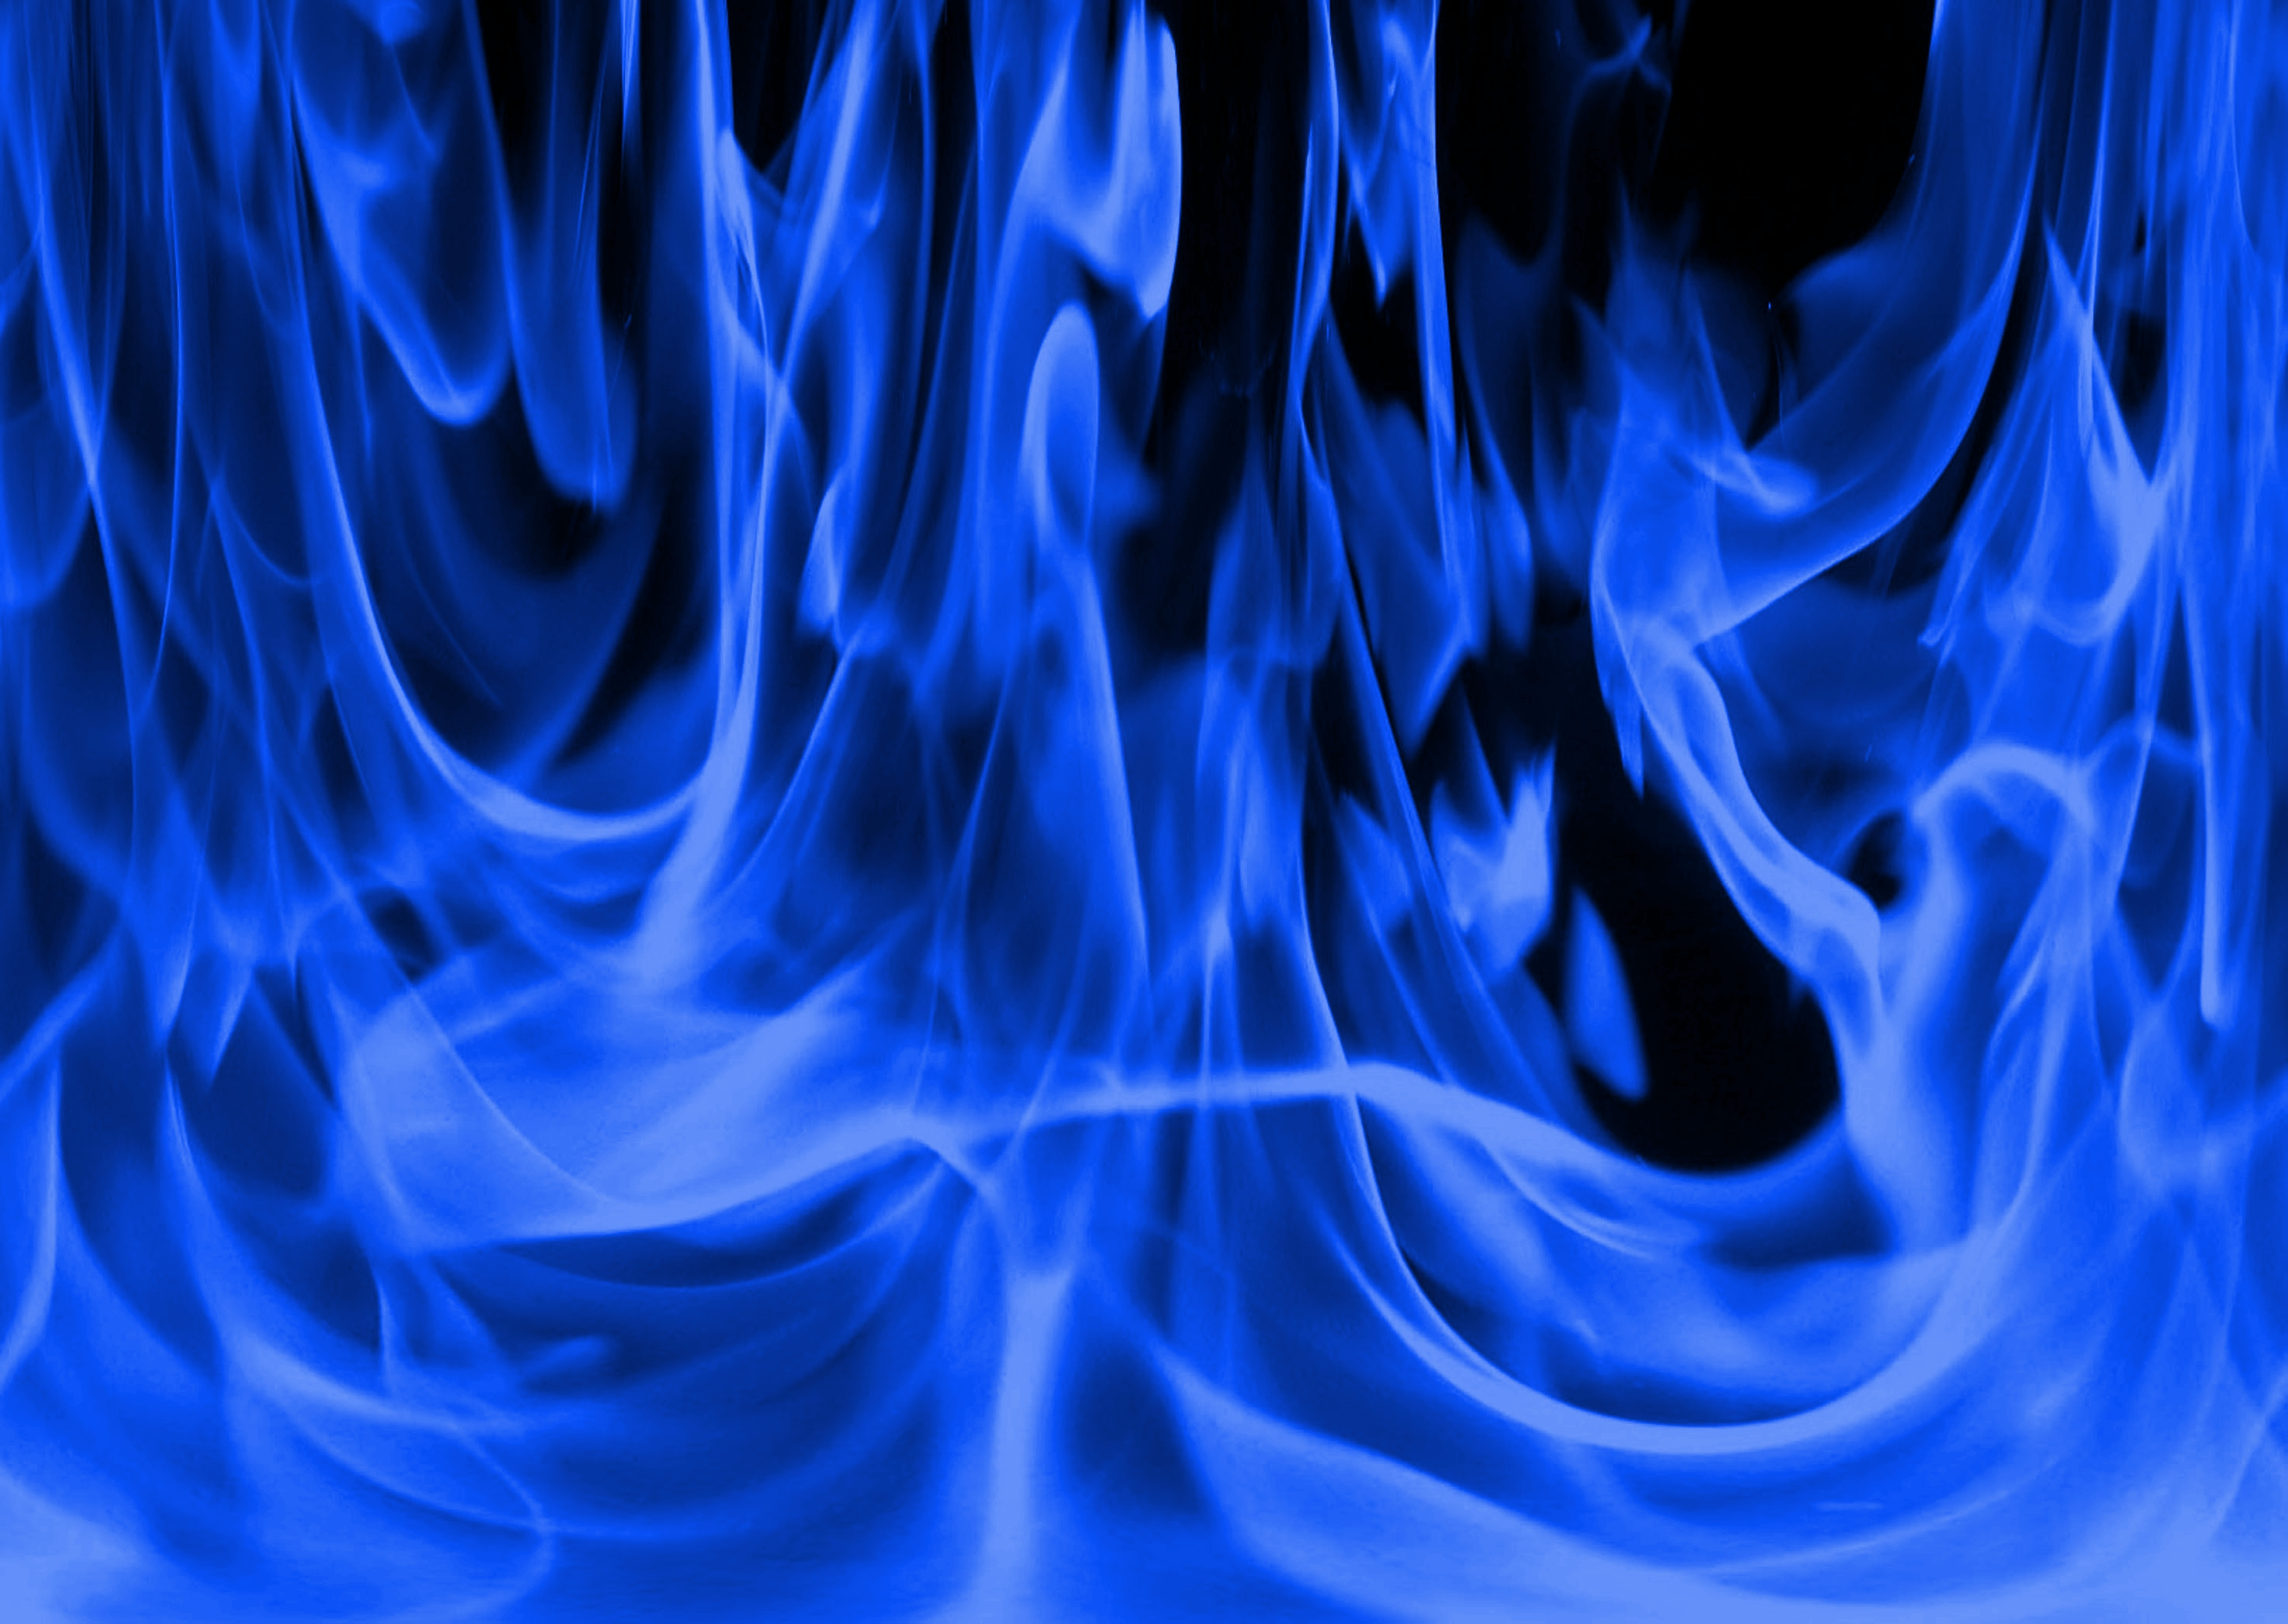 43 Red And Blue Fire Wallpaper On Wallpapersafari